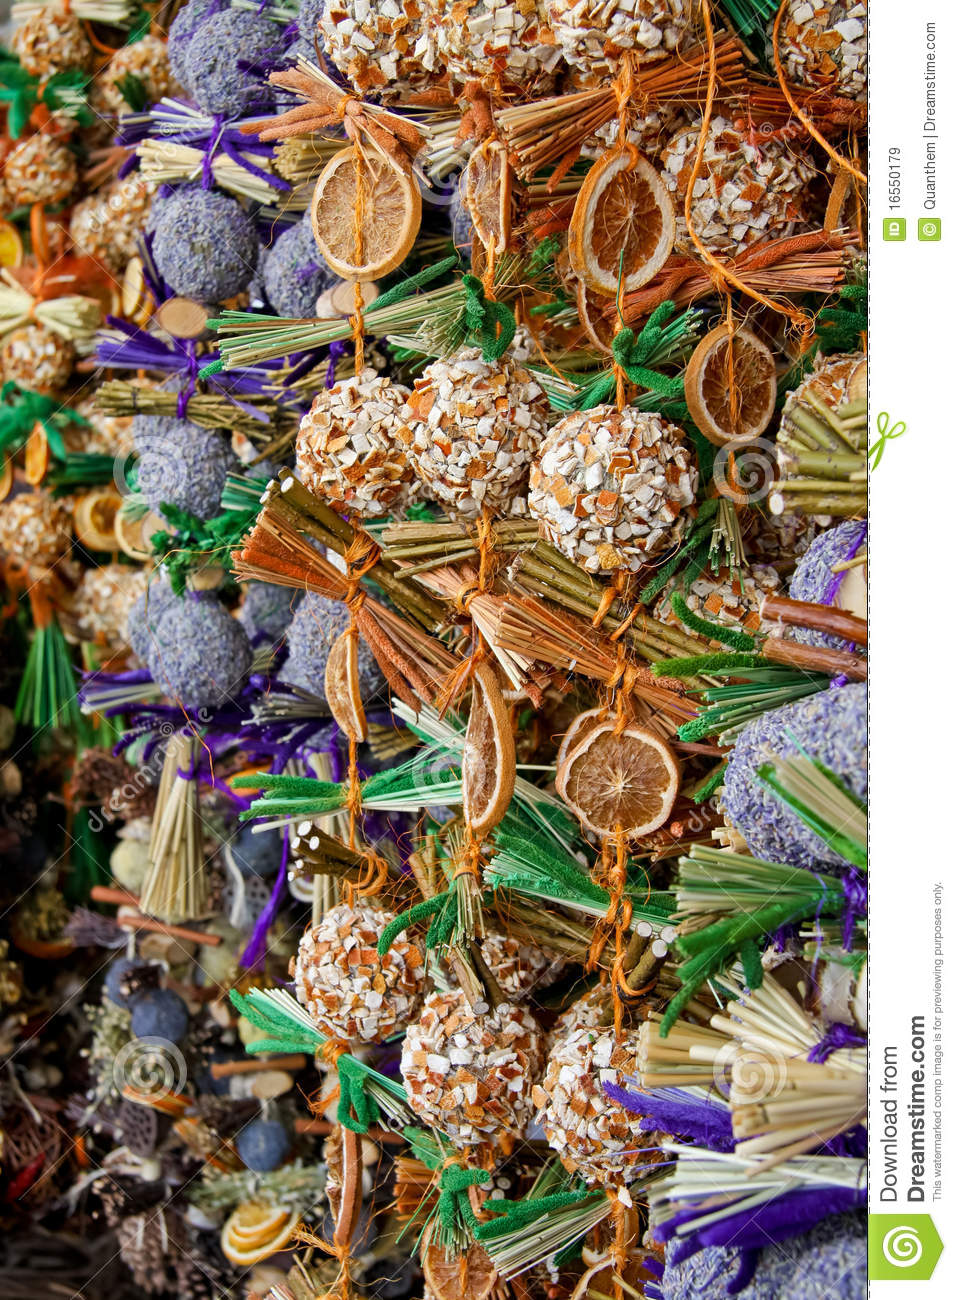 Christmas Ornament Royalty Free Stock Images  Image 16550179. Graveside Christmas Decorations. Homemade Christmas Ornaments Ideas Adults. Resin Christmas Cake Decorations. Christmas Decorations For Outdoor Trees. Christmas Decorations Outdoor Amazon. Decorating Christmas Tree With Ribbon Ideas. Ideas For Christmas Decorating On A Budget. Paper Christmas Decorations Wreath